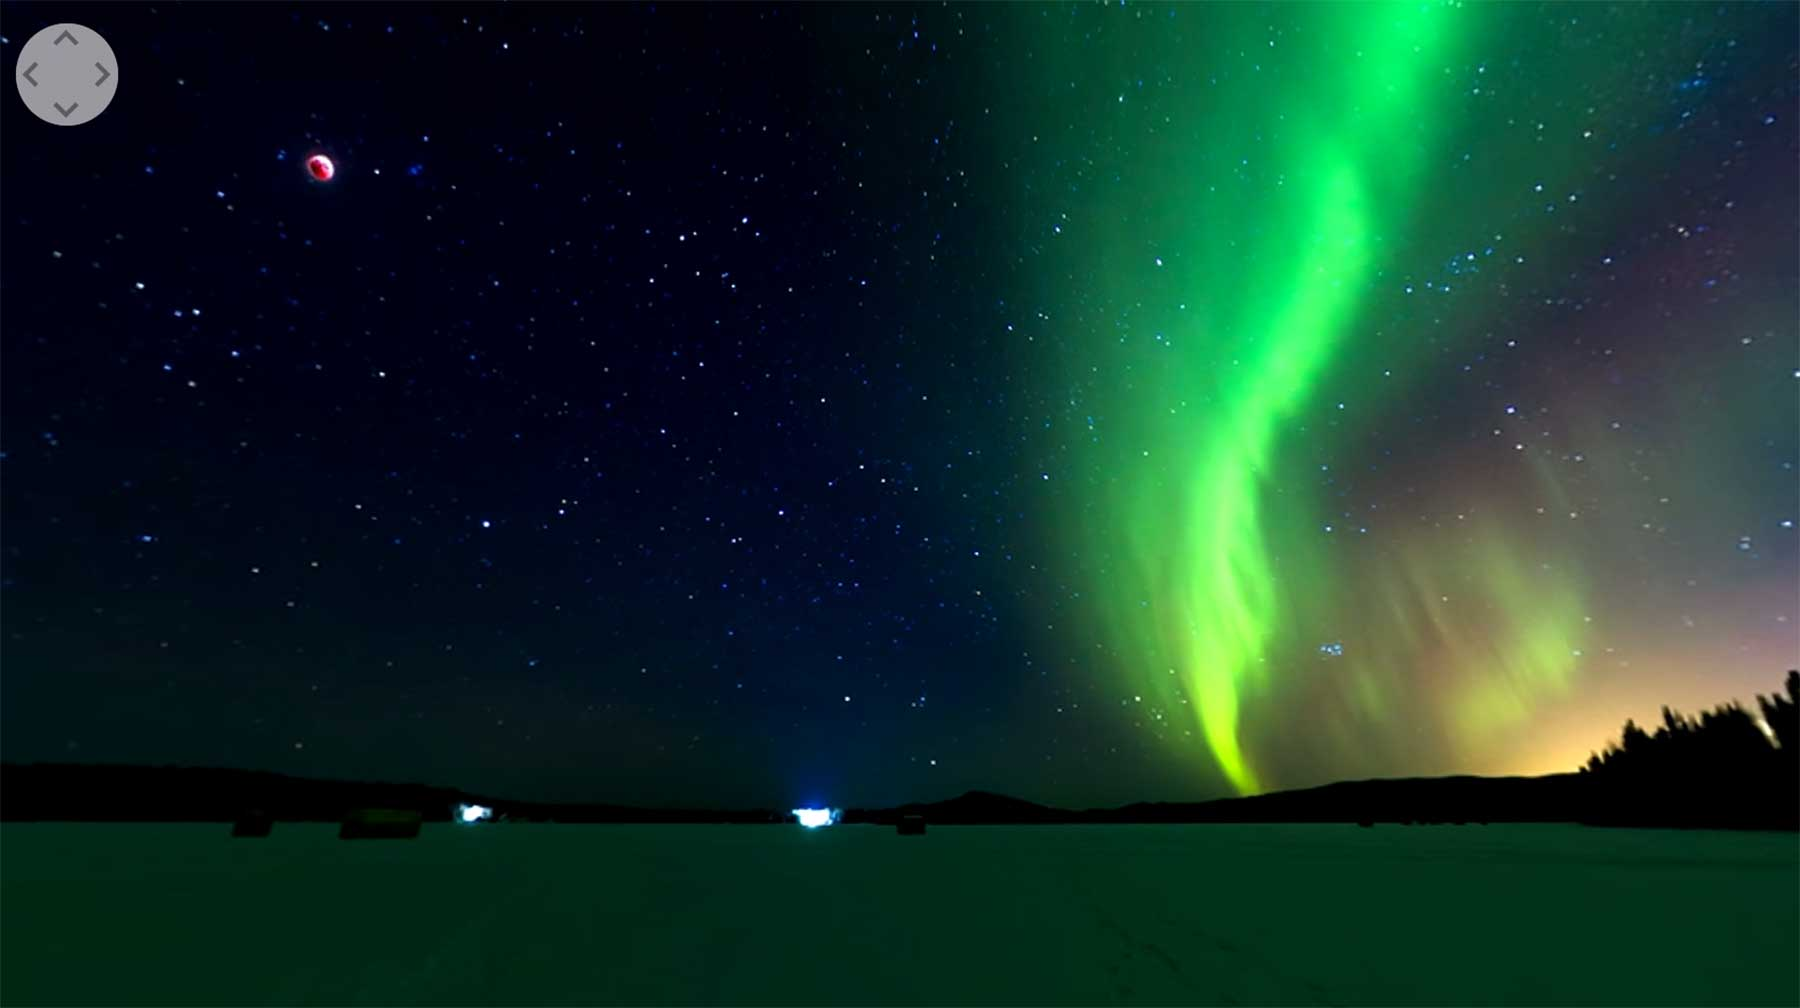 Mondfinsternis und Polarlichter in 360°-Video anschauen Lunar-Eclipse-and-Aurora-Borealis-360